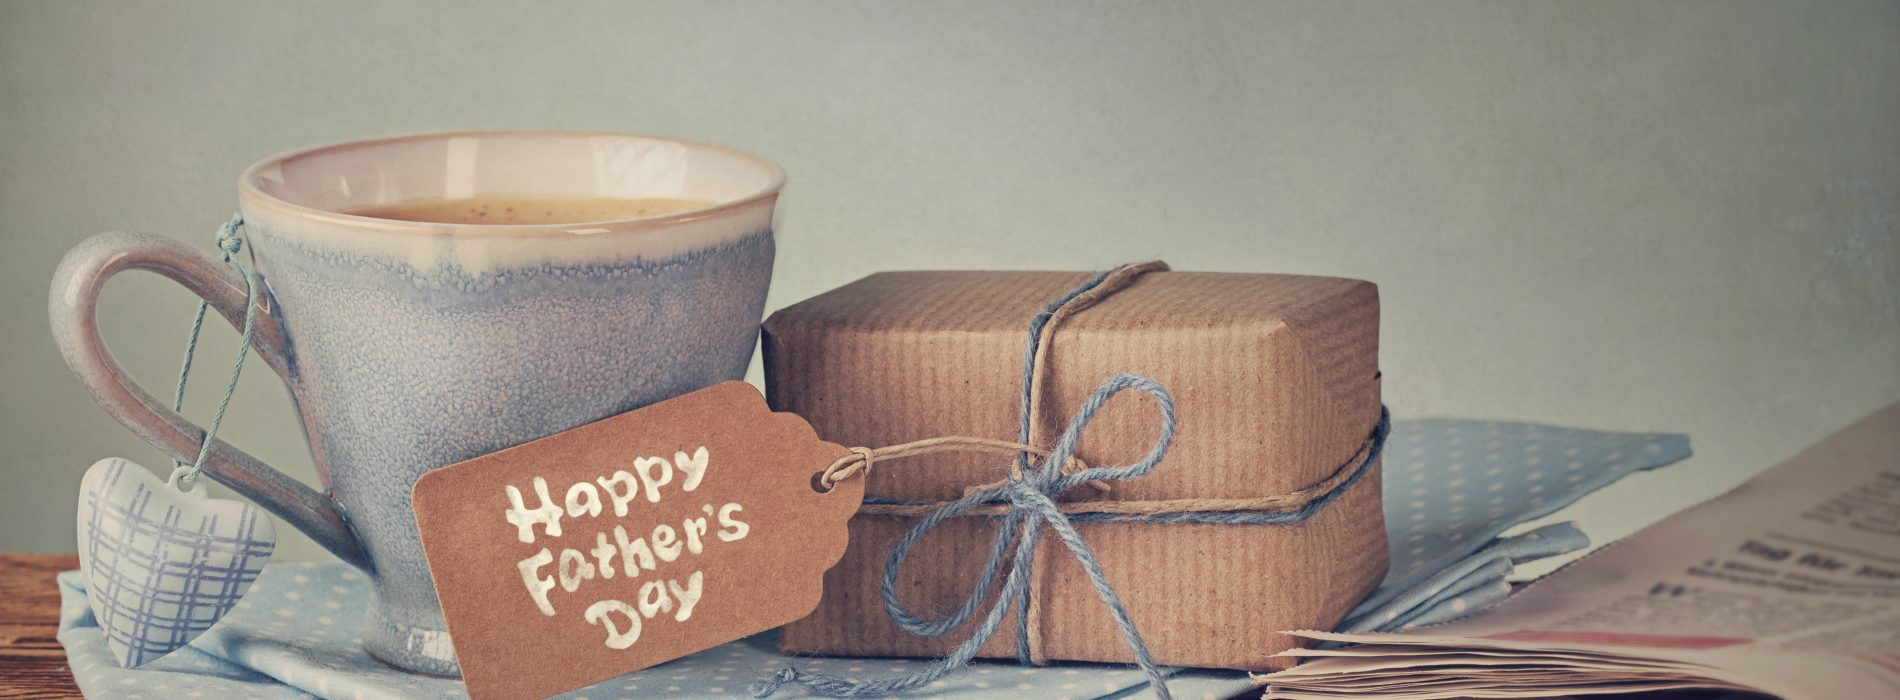 Fun Father's Day Gifts Under $20